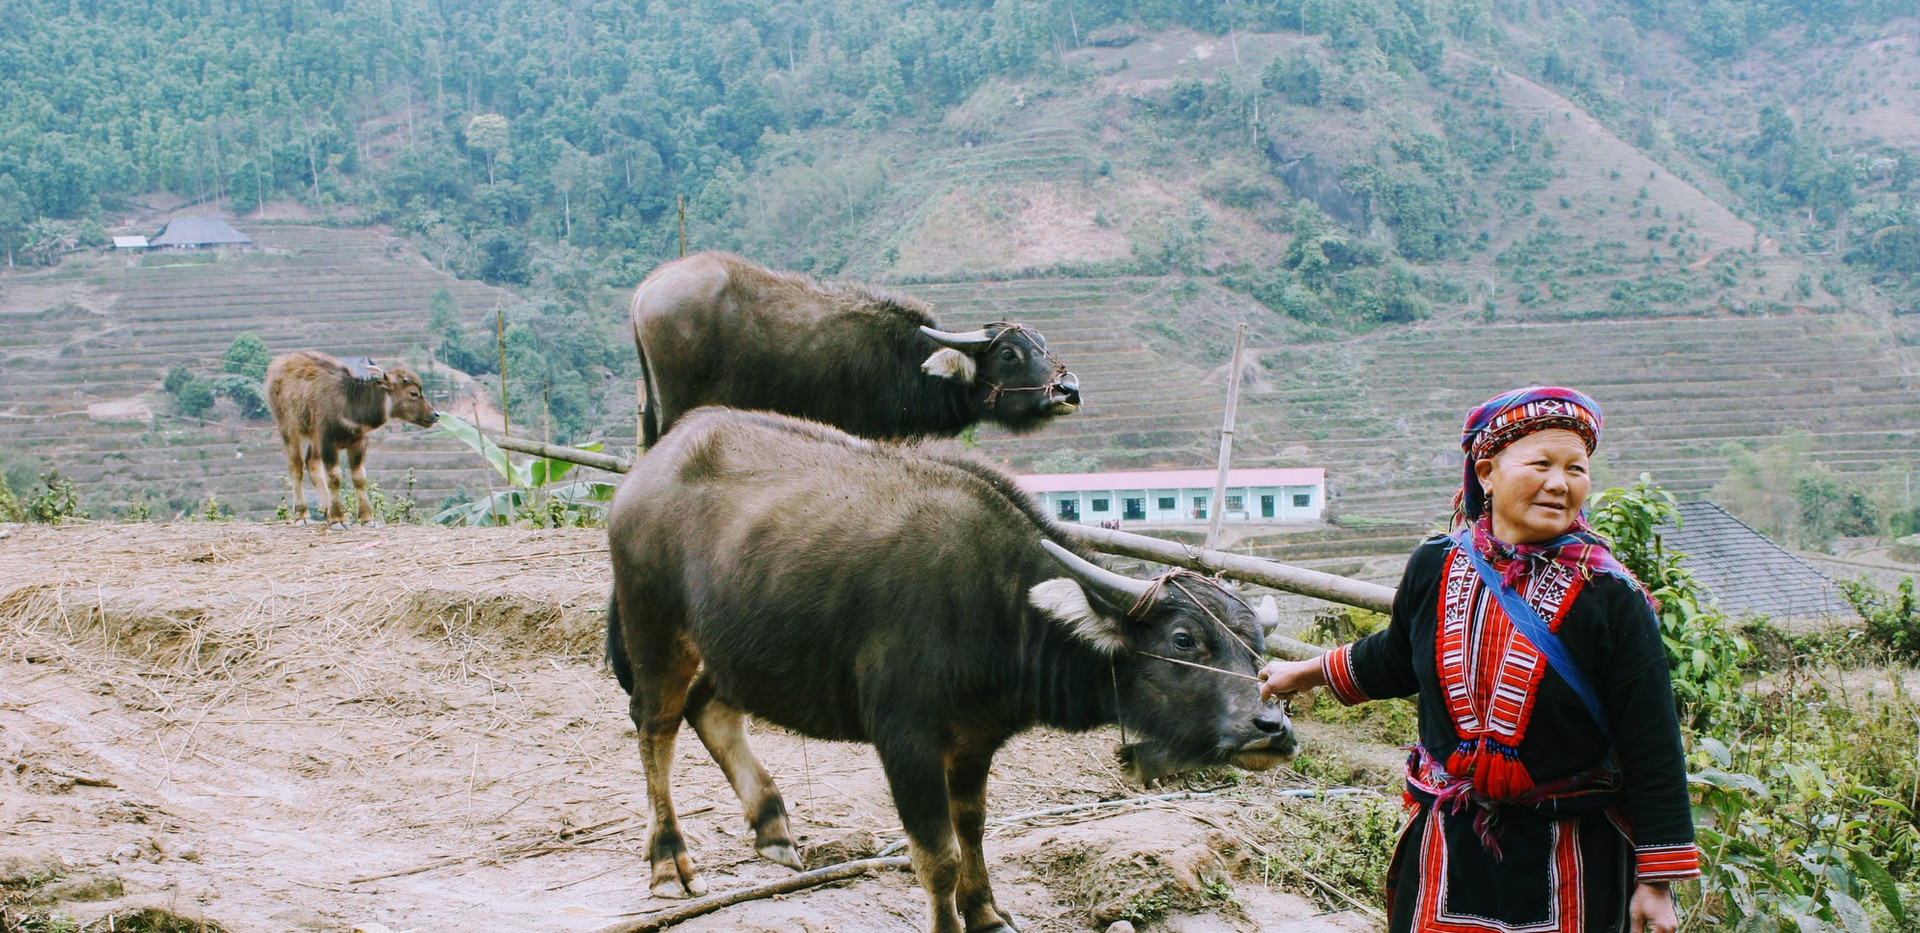 A local woman is taking her buffalo in Ha Giang